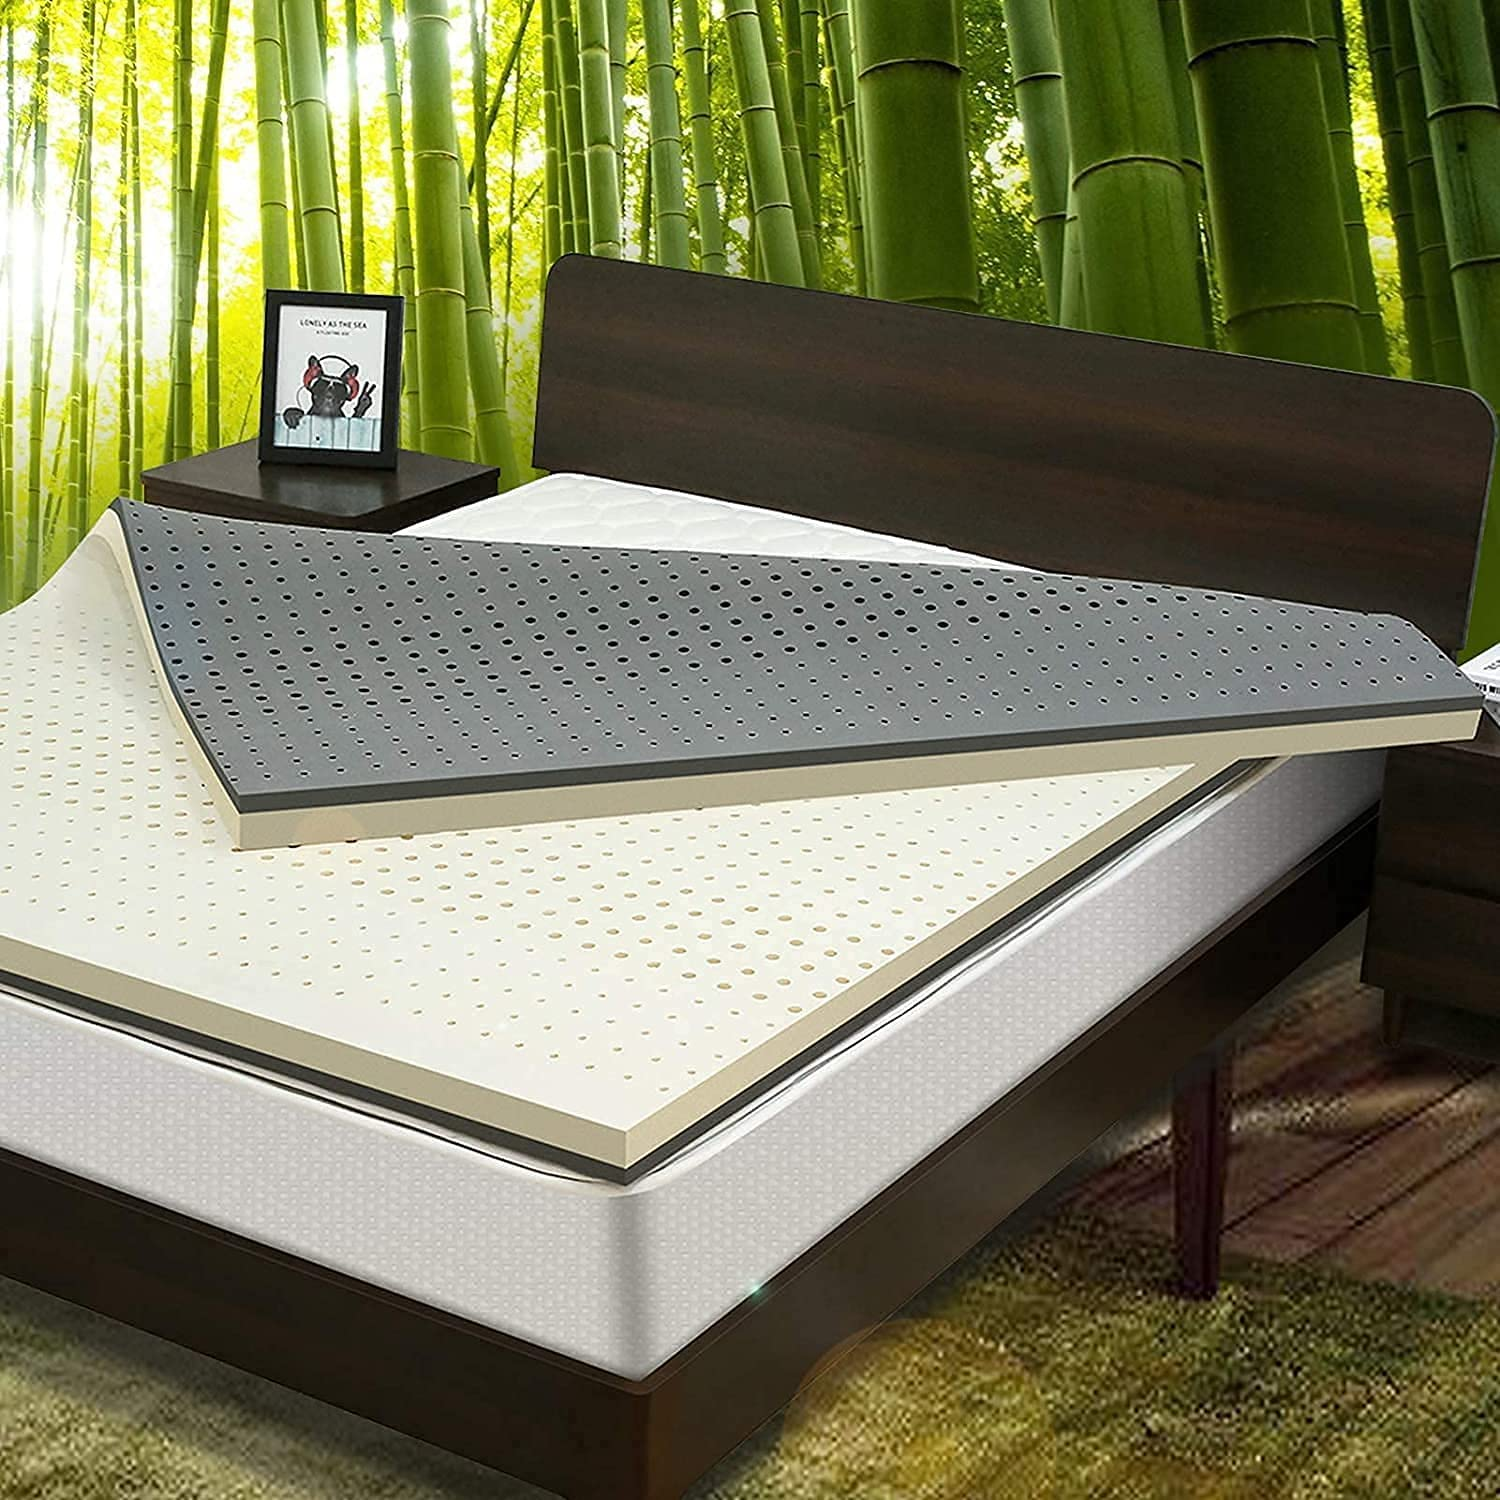 NESAILA price 3.15 Inch Natural Latex All stores are sold Topper Queen Dual Size- Mattress